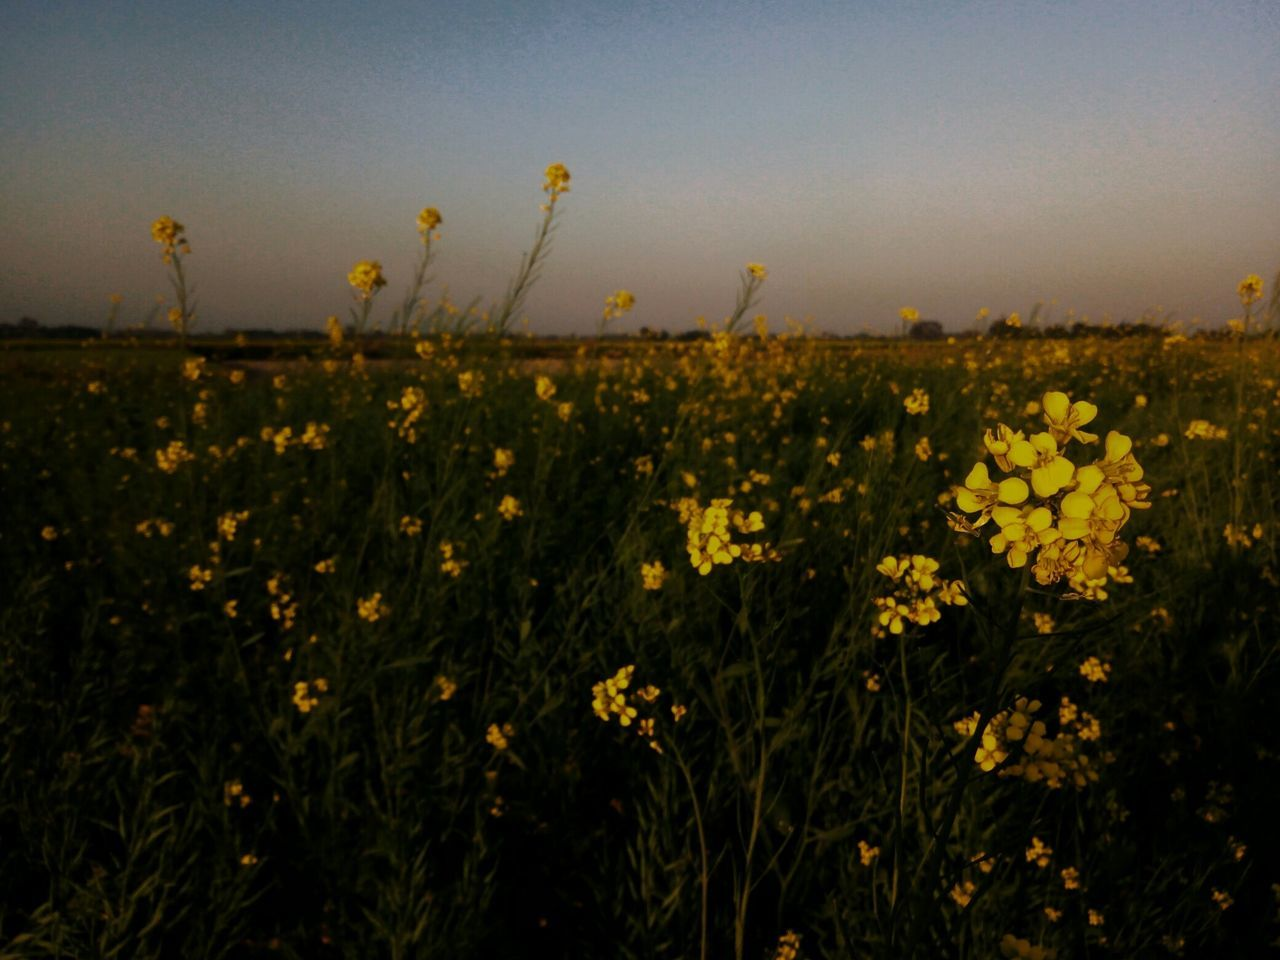 flower, nature, growth, yellow, plant, field, beauty in nature, agriculture, no people, tranquility, outdoors, rural scene, tranquil scene, oilseed rape, scenics, landscape, freshness, sunset, fragility, day, grass, sky, clear sky, close-up